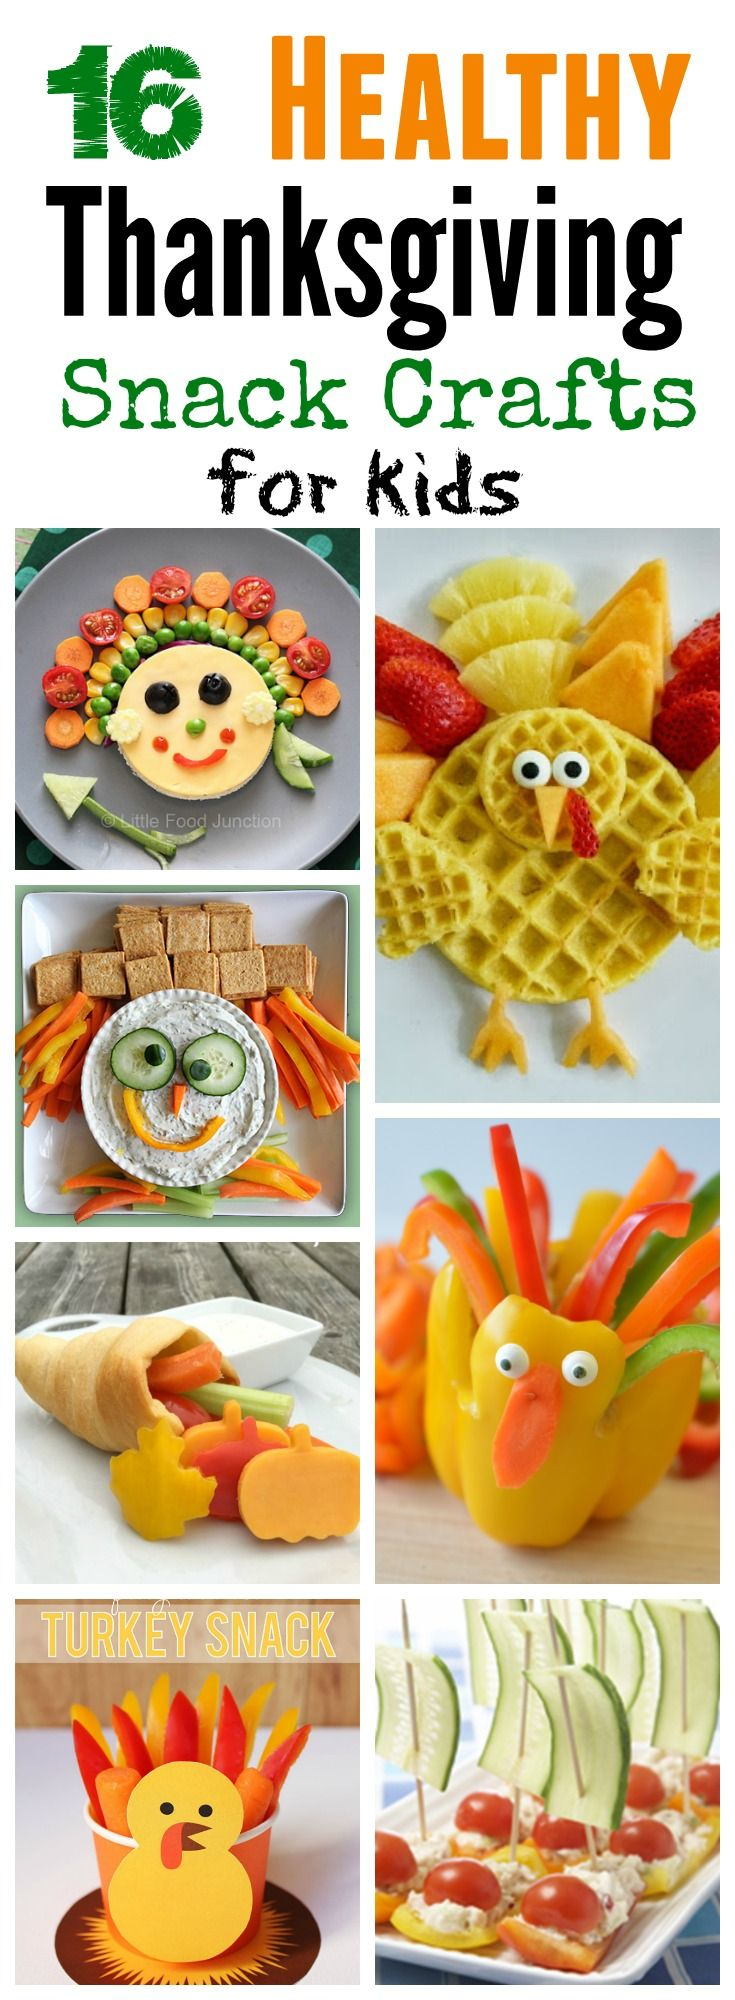 Healthy Thanksgiving Snack Ideas for Kids! #Healthy #Thanksgiving